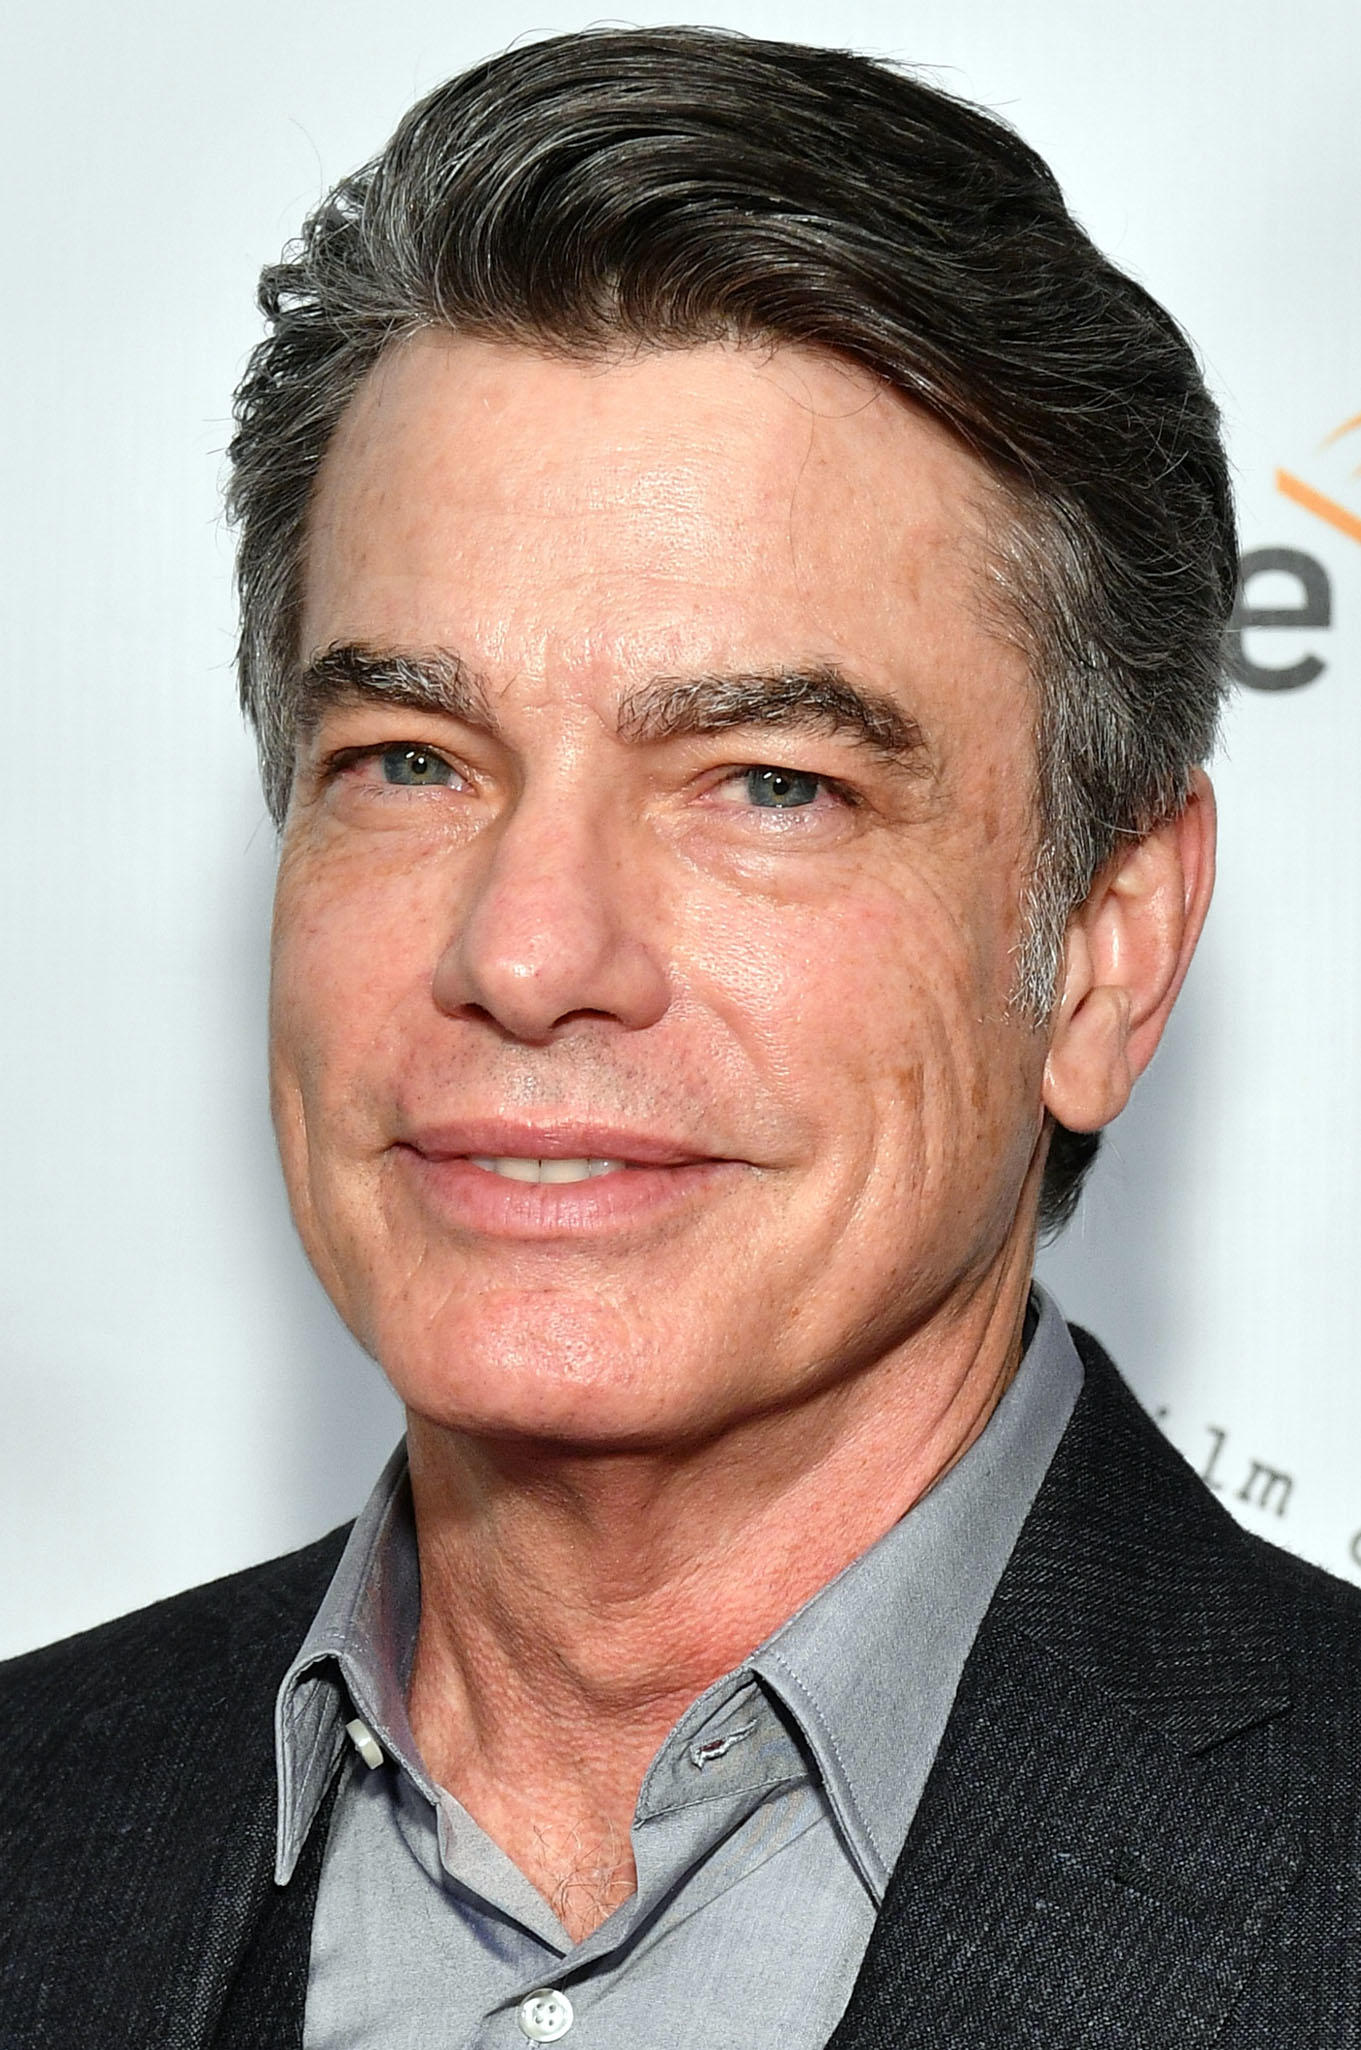 Peter Gallagher at the 2017 New York Stage & Film Winter Gala.